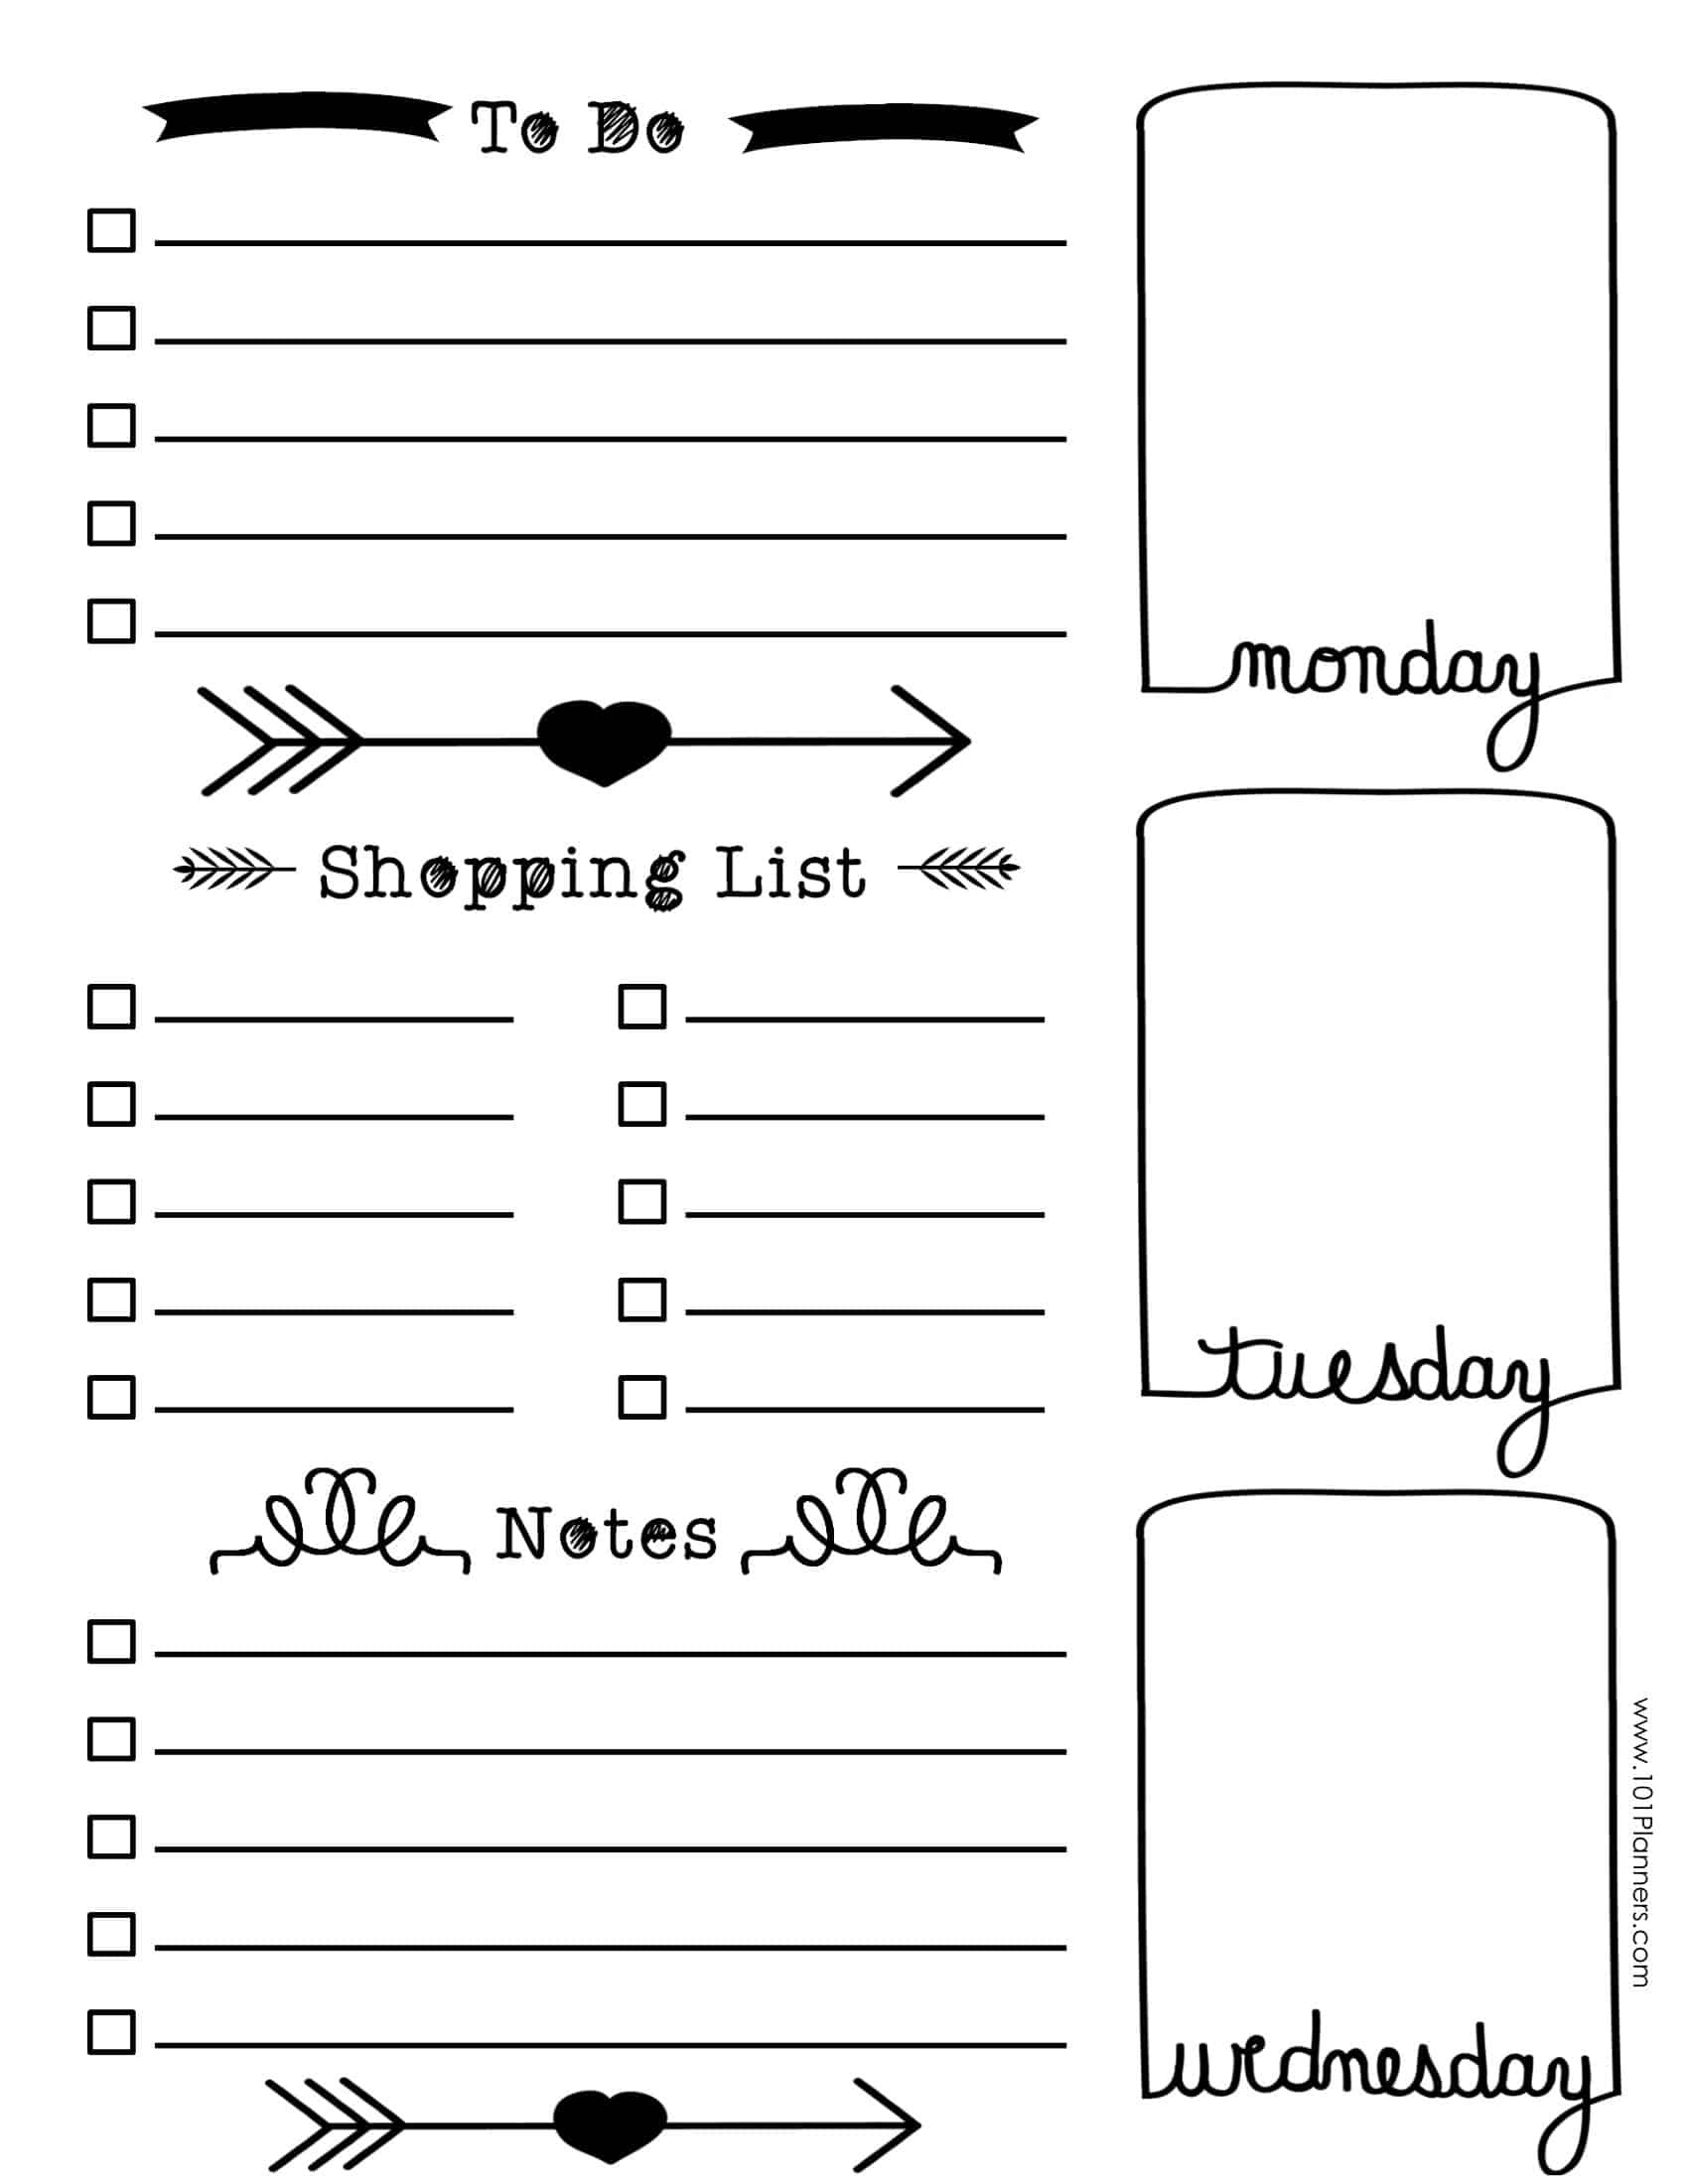 Free Bullet Journal Printables | Customize Online For Any Planner Size - Free Bullet Journal Printables 2018